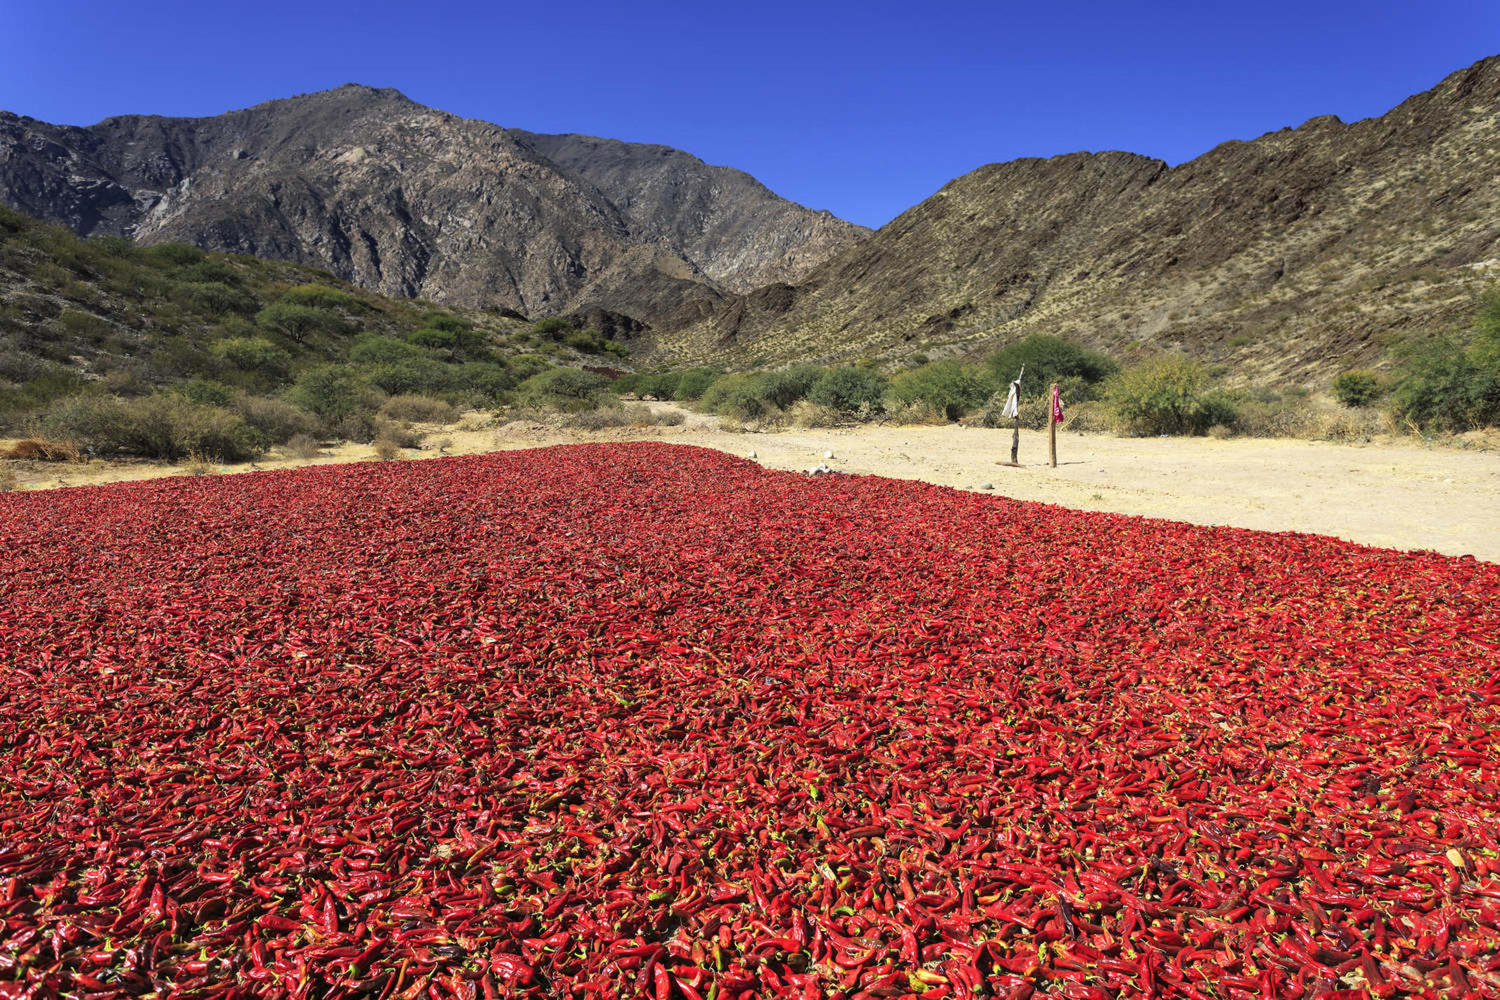 Pepper drying in the mountain village Cachi